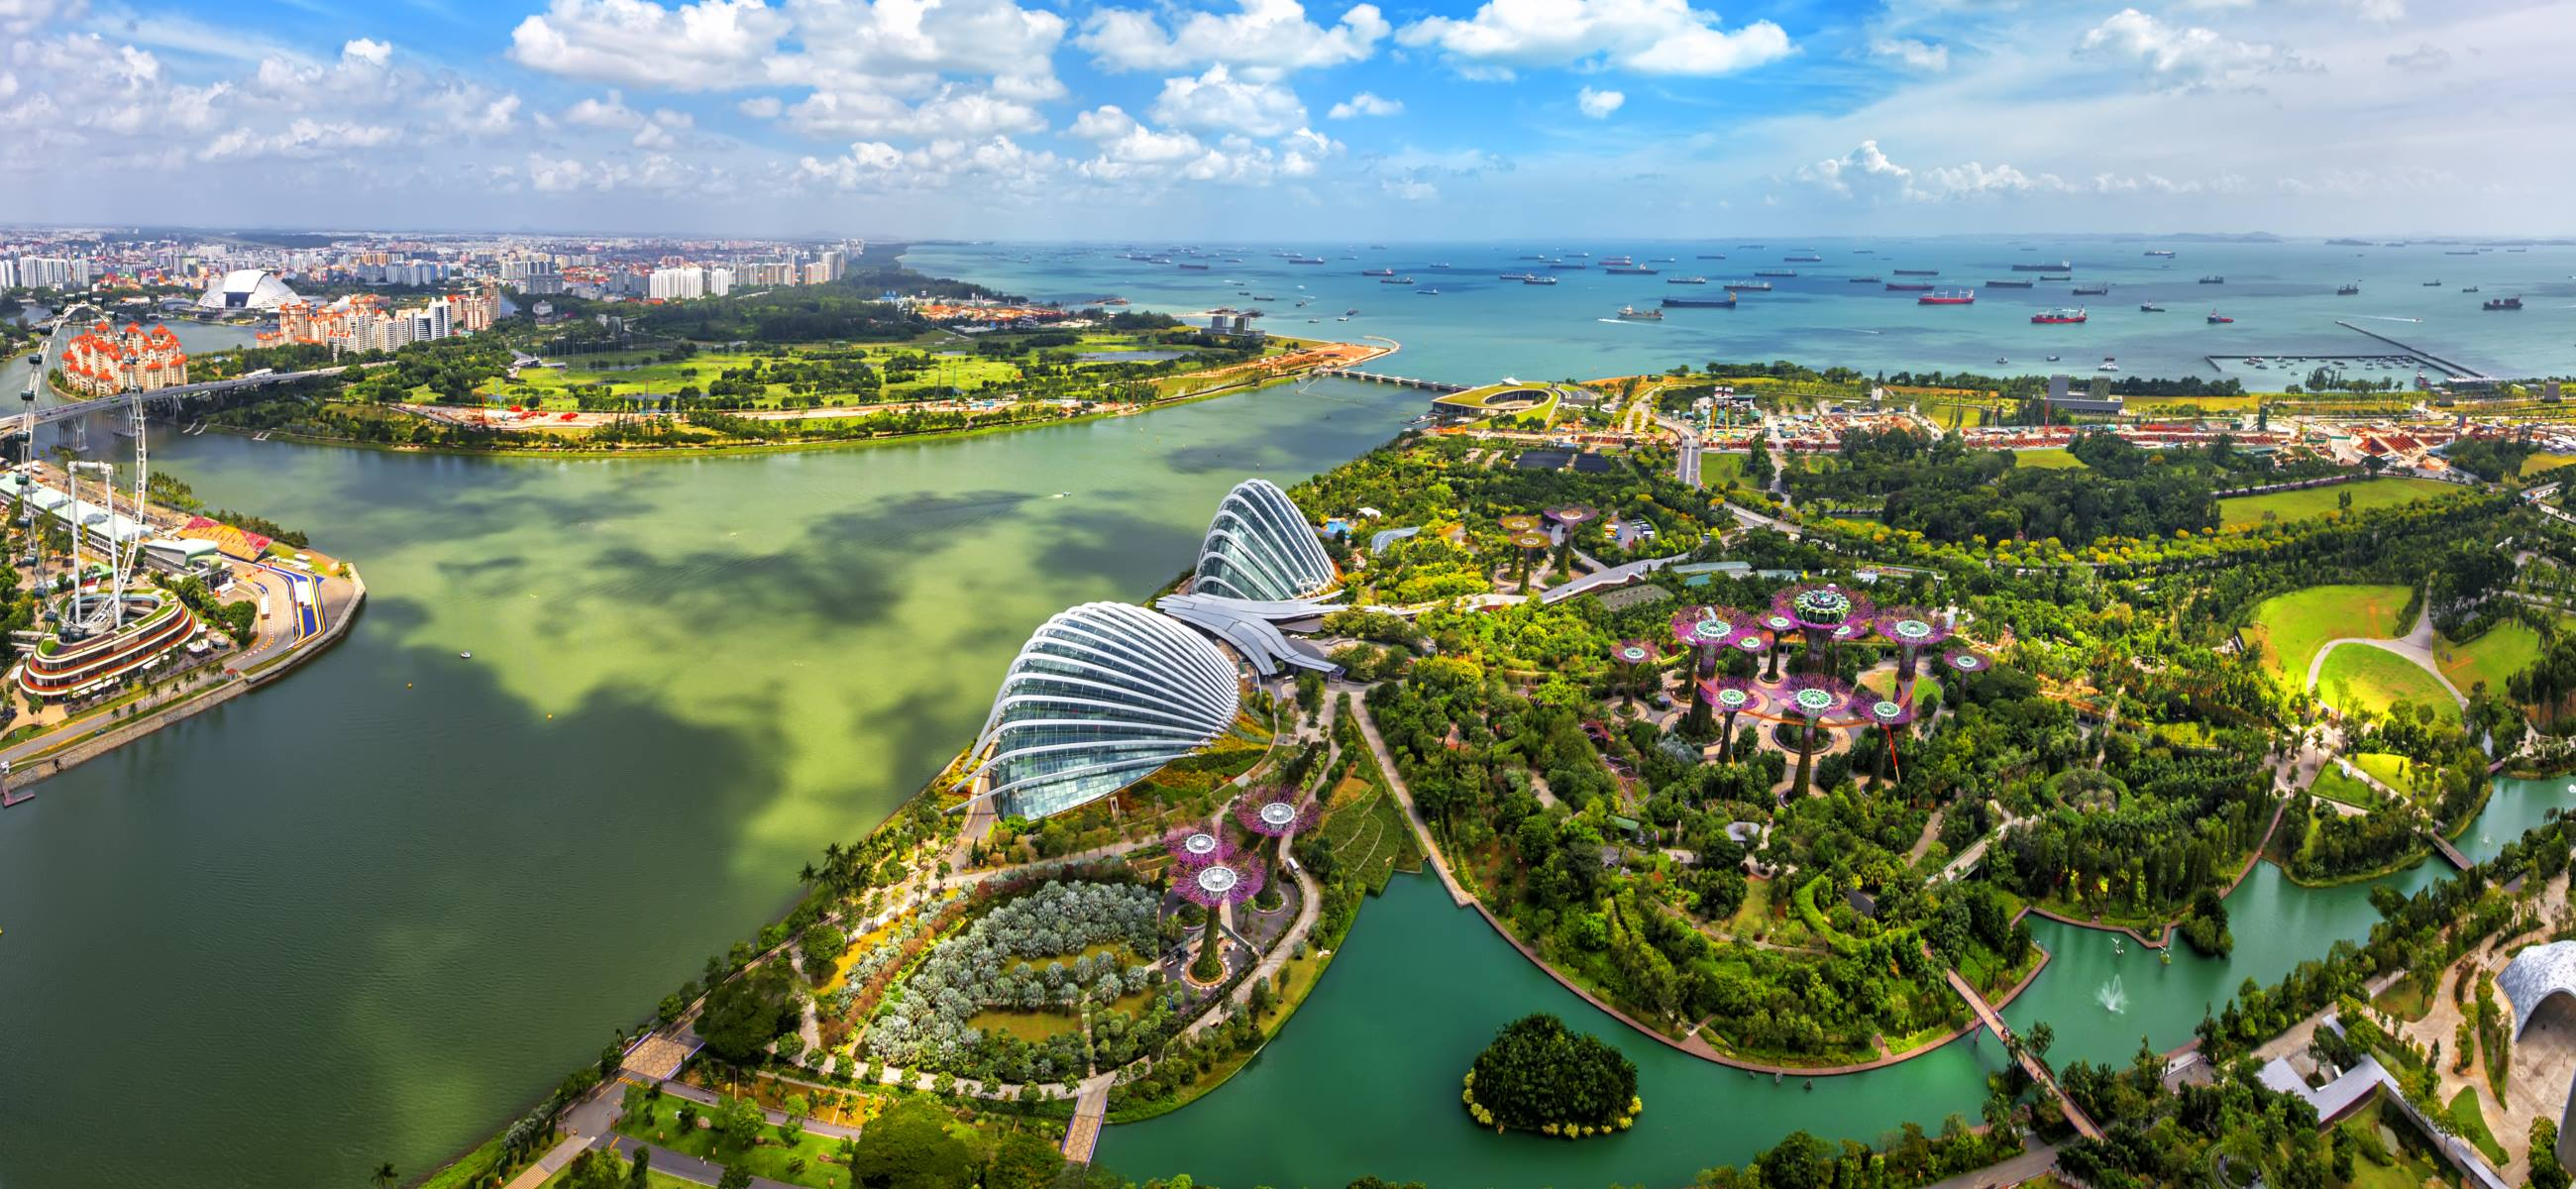 Top-Places-To-Visit-In-Singapore